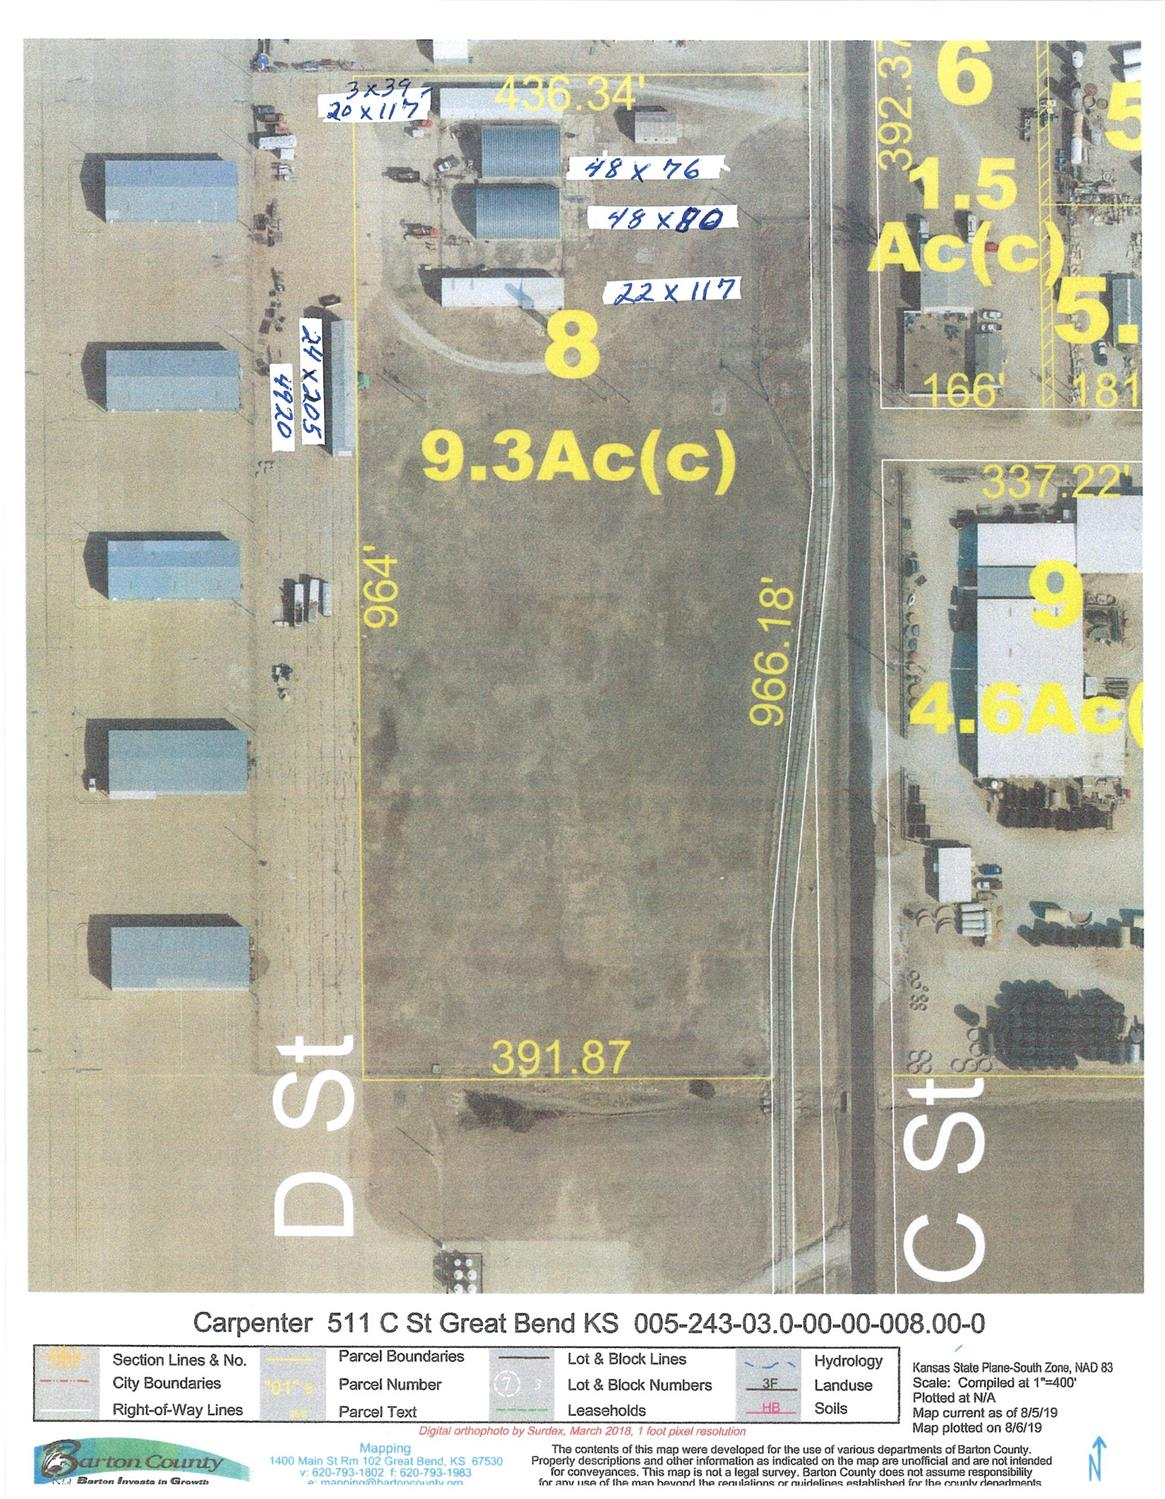 Revised listing with buildings and approximately 9.3+/- East side of Airplane Hangers at Great Bend Airport. Plenty of room to develop and or put new hangers.